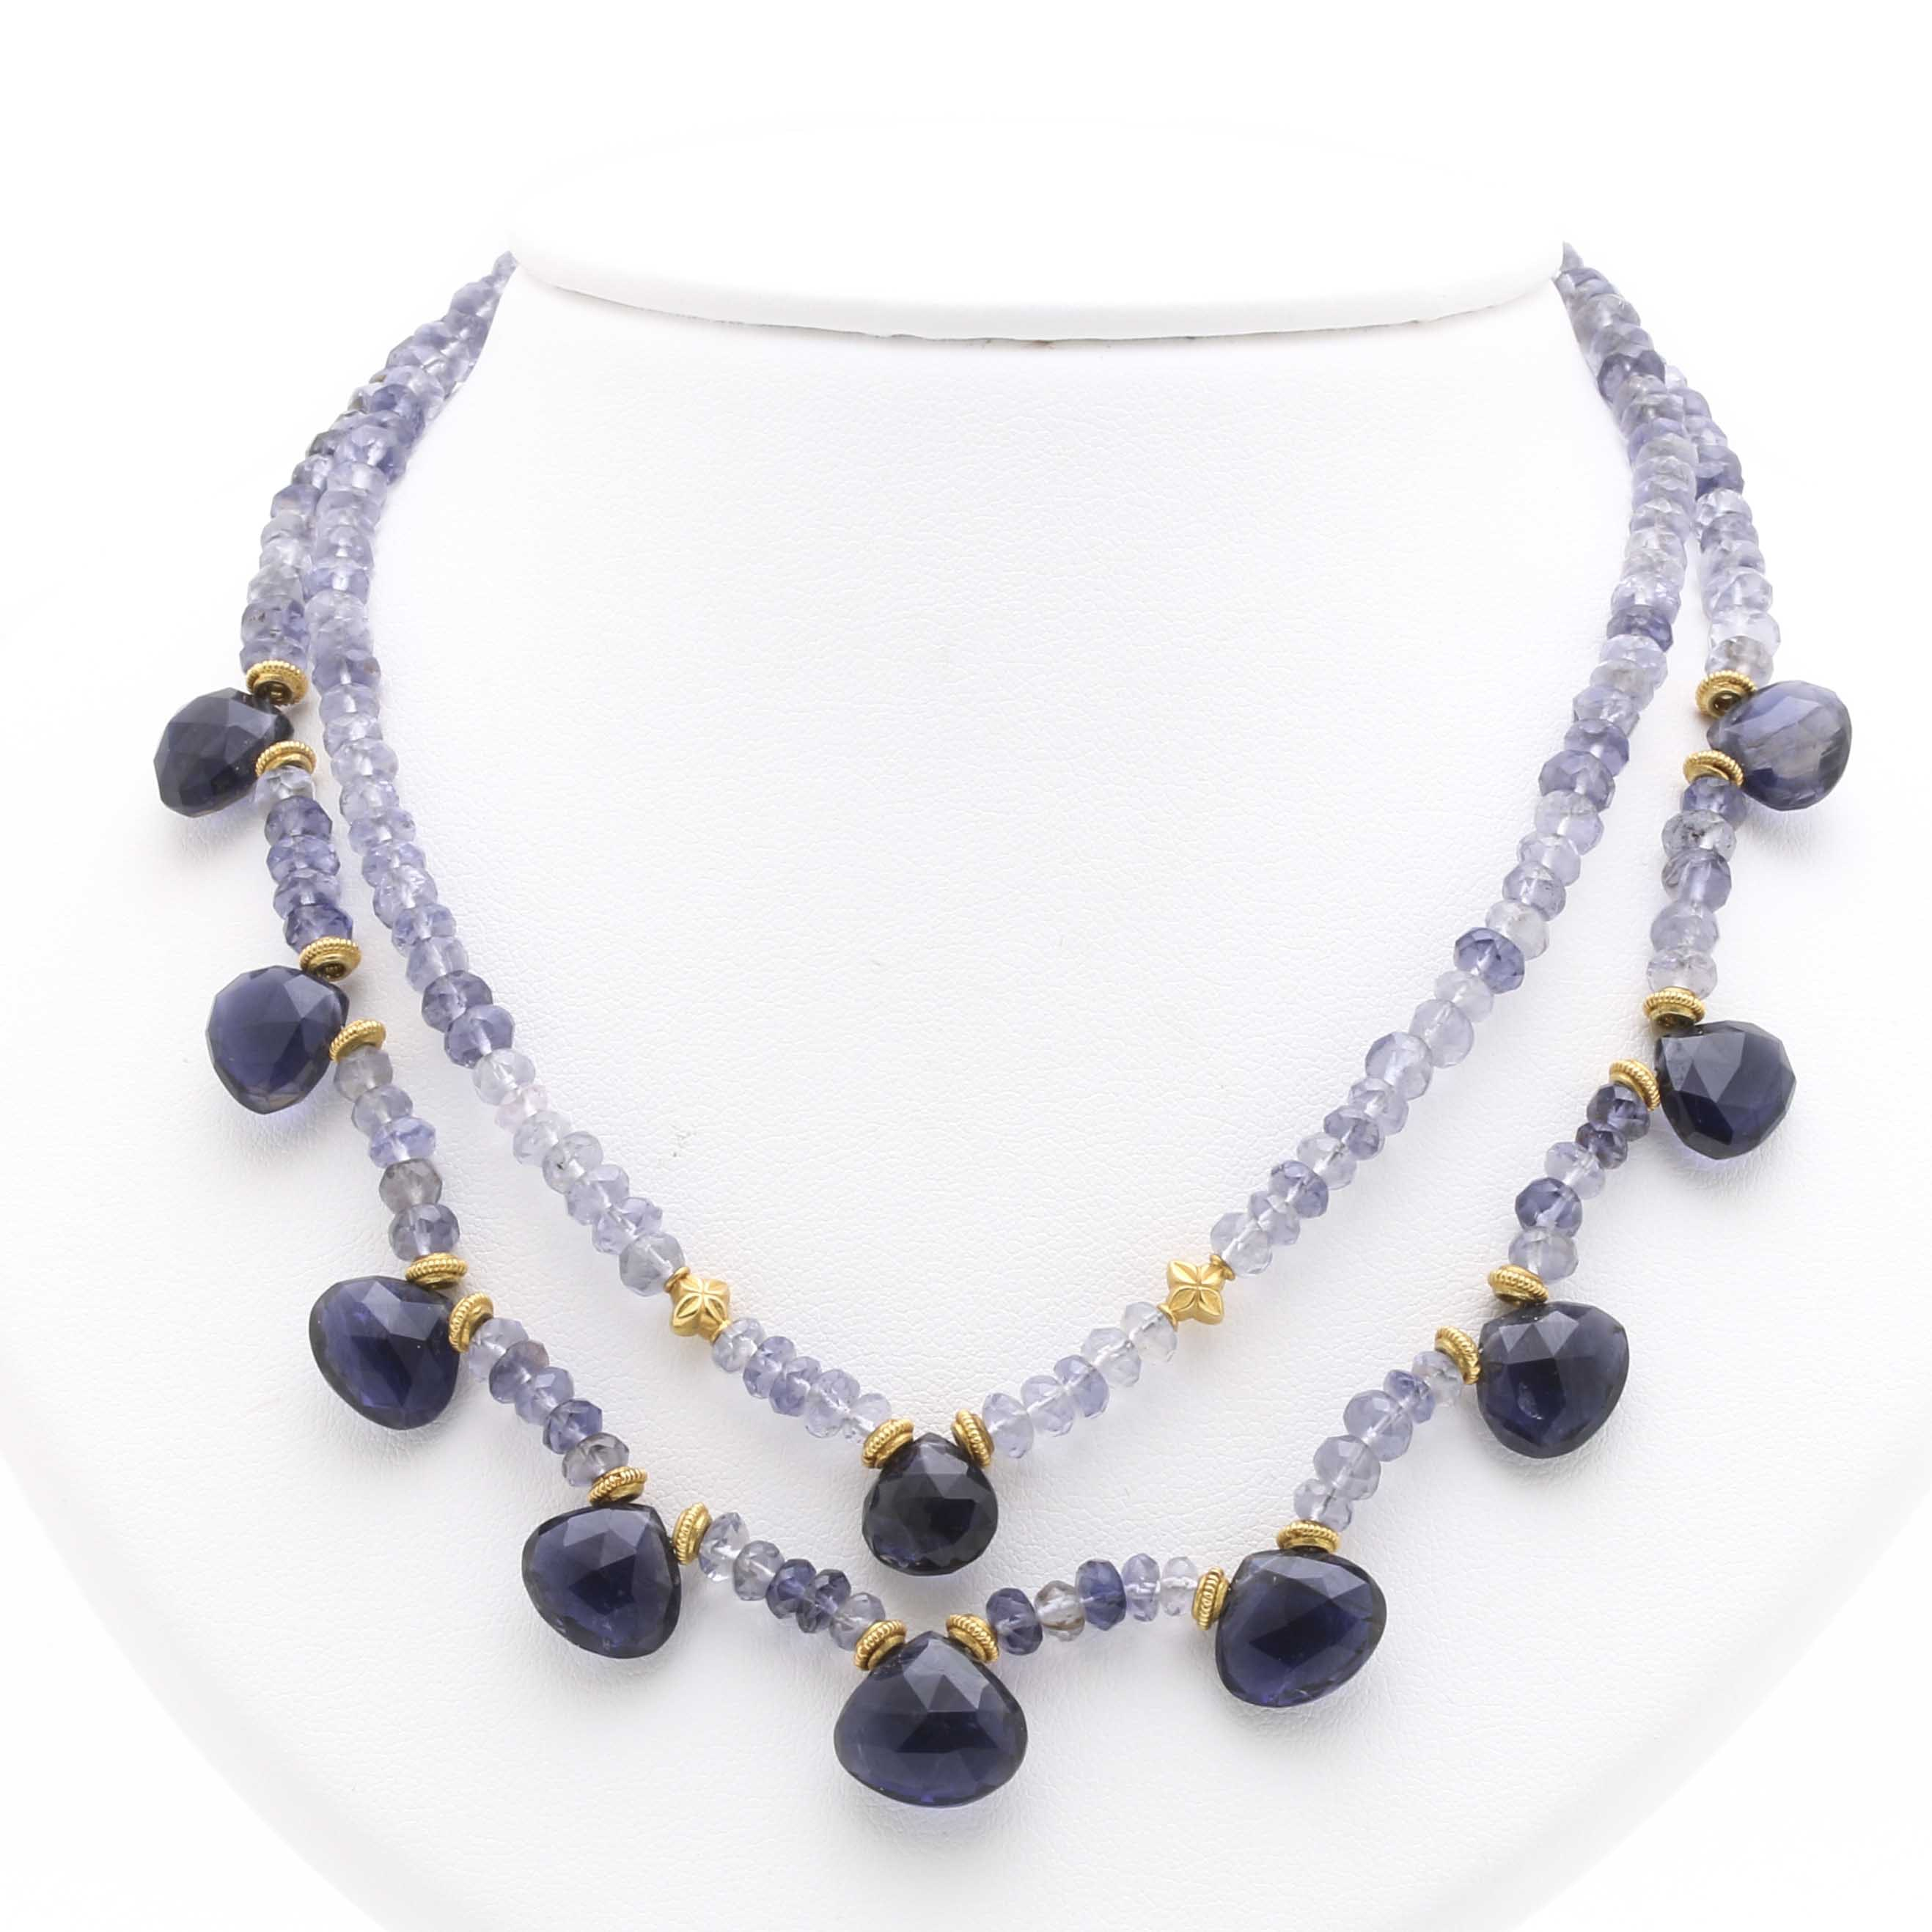 Double Strand Iolite Necklace With 18K Yellow Gold Findings